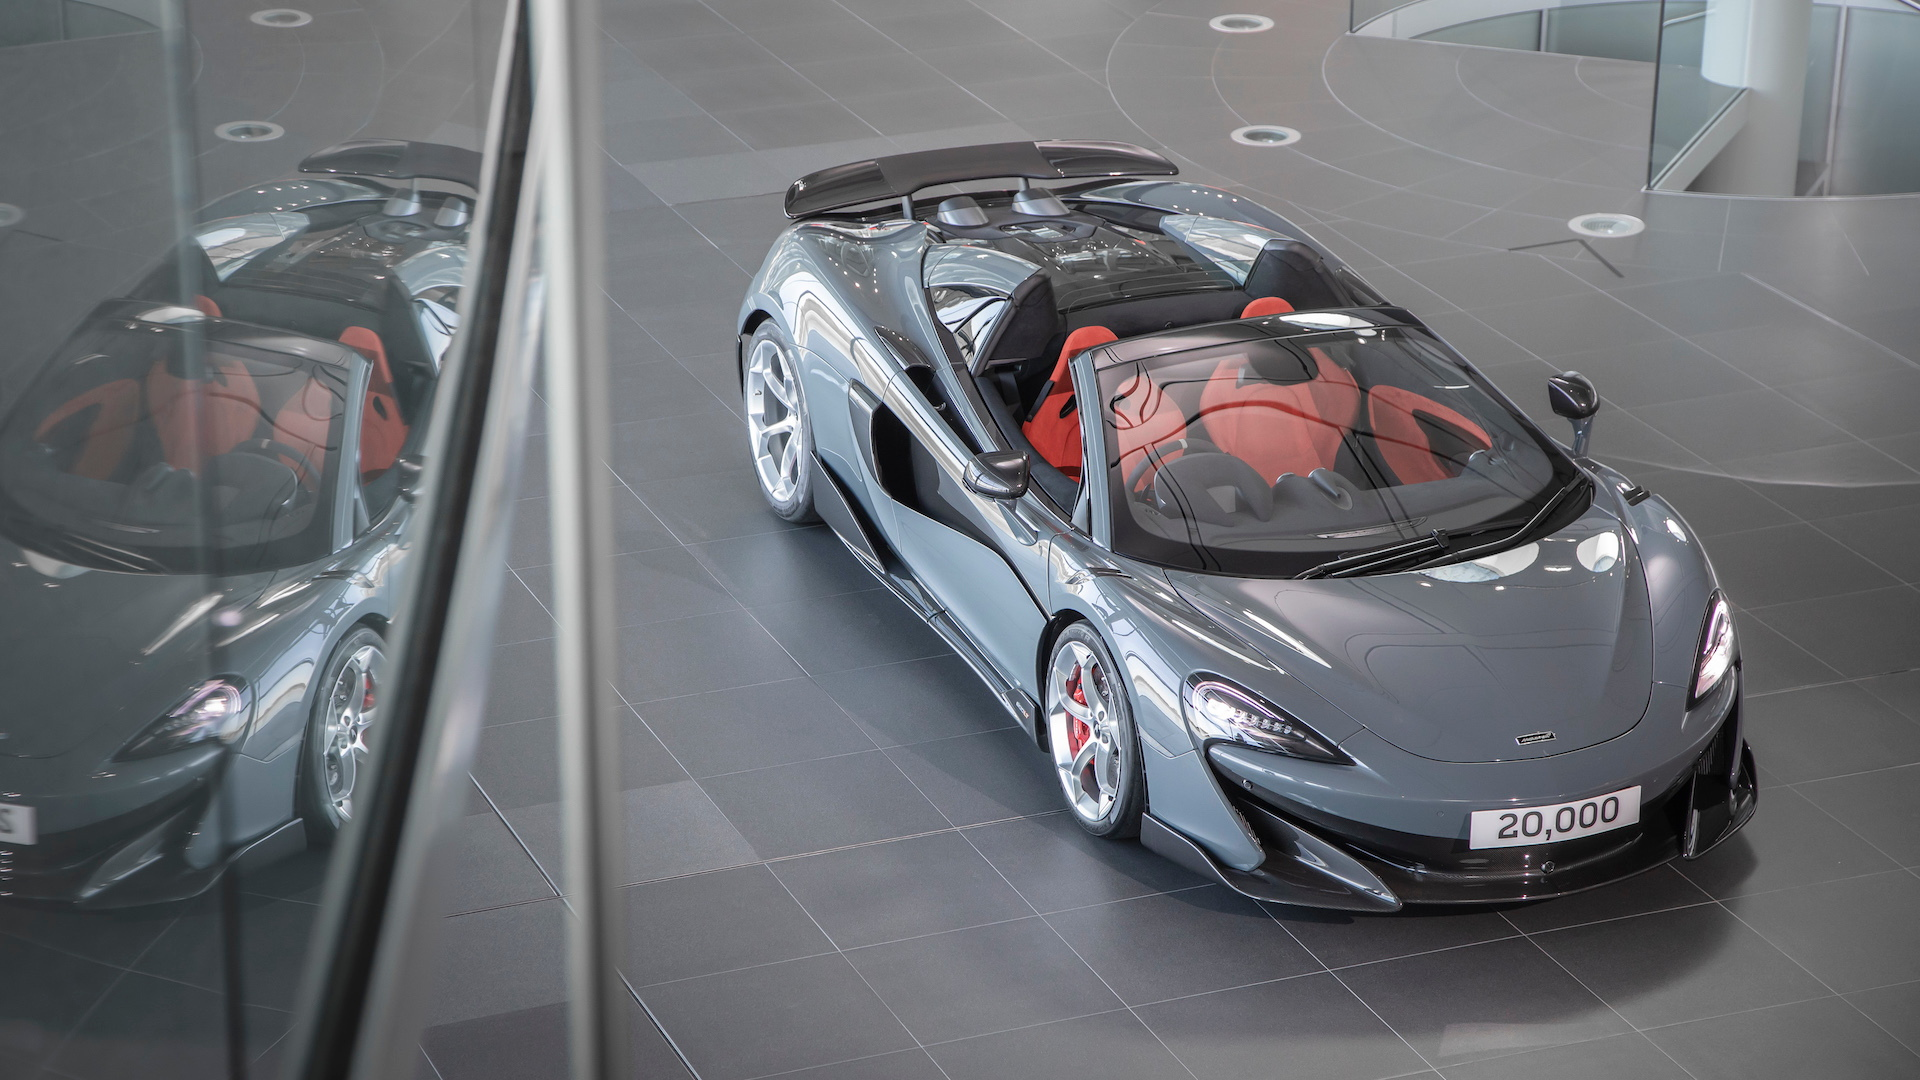 20,000th McLaren built: 600LT Spider